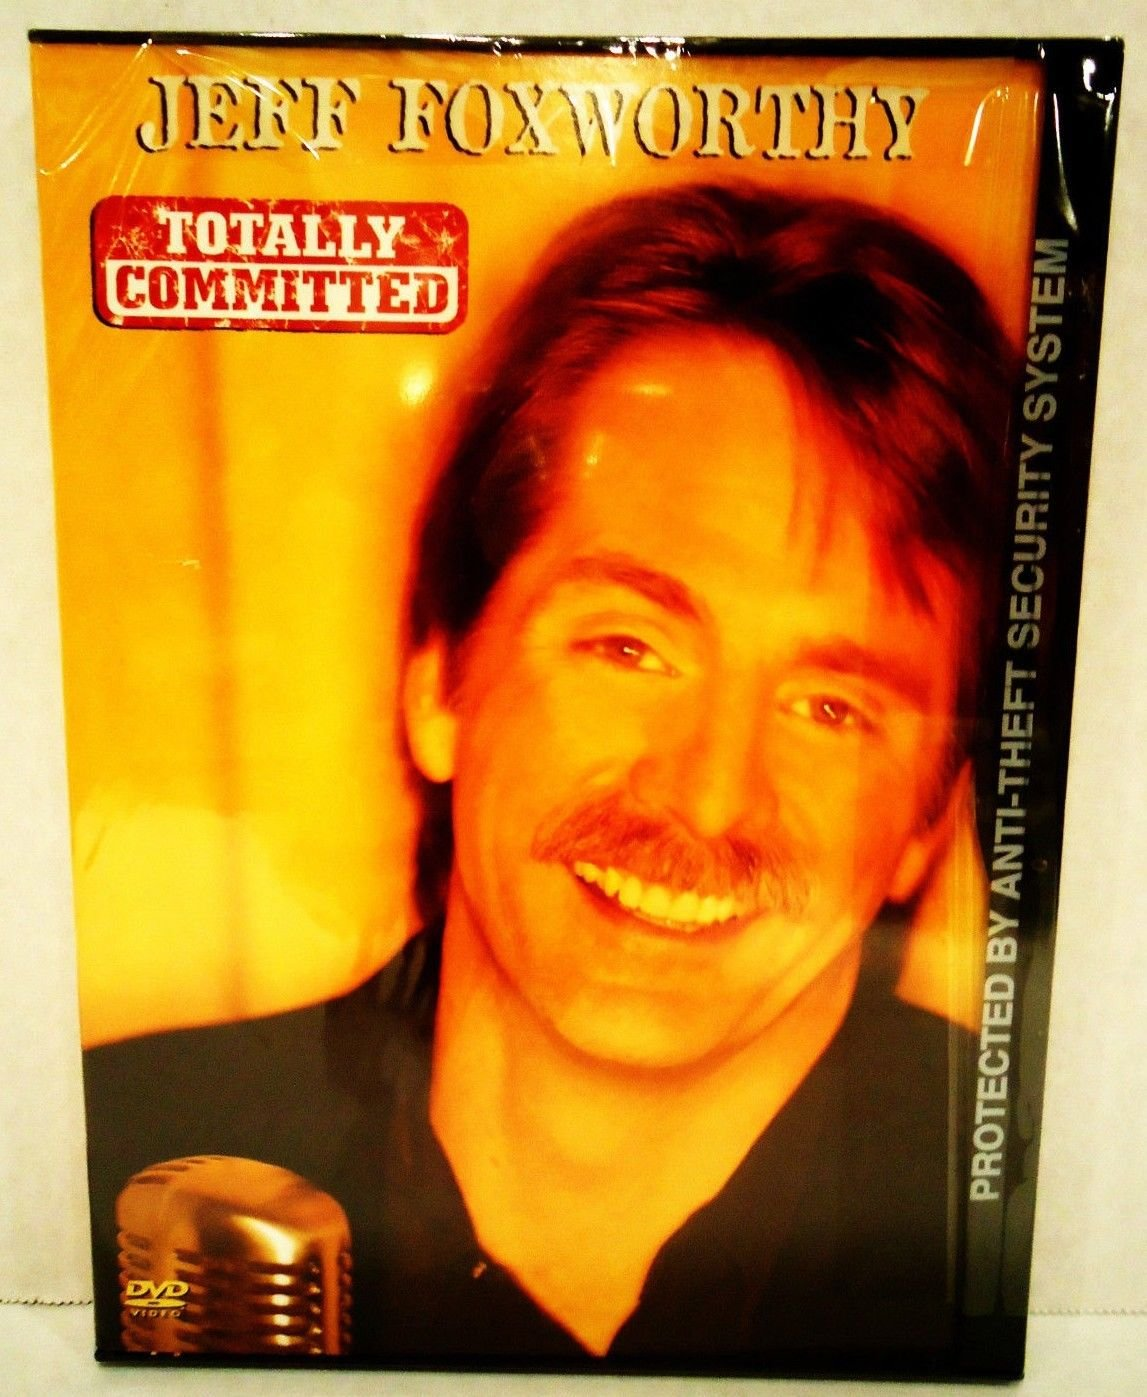 JEFF FOXWORTHY - TOTALLY COMMITTED - DVD - HBO - NEW - SEALED - COMEDY - MOVIE